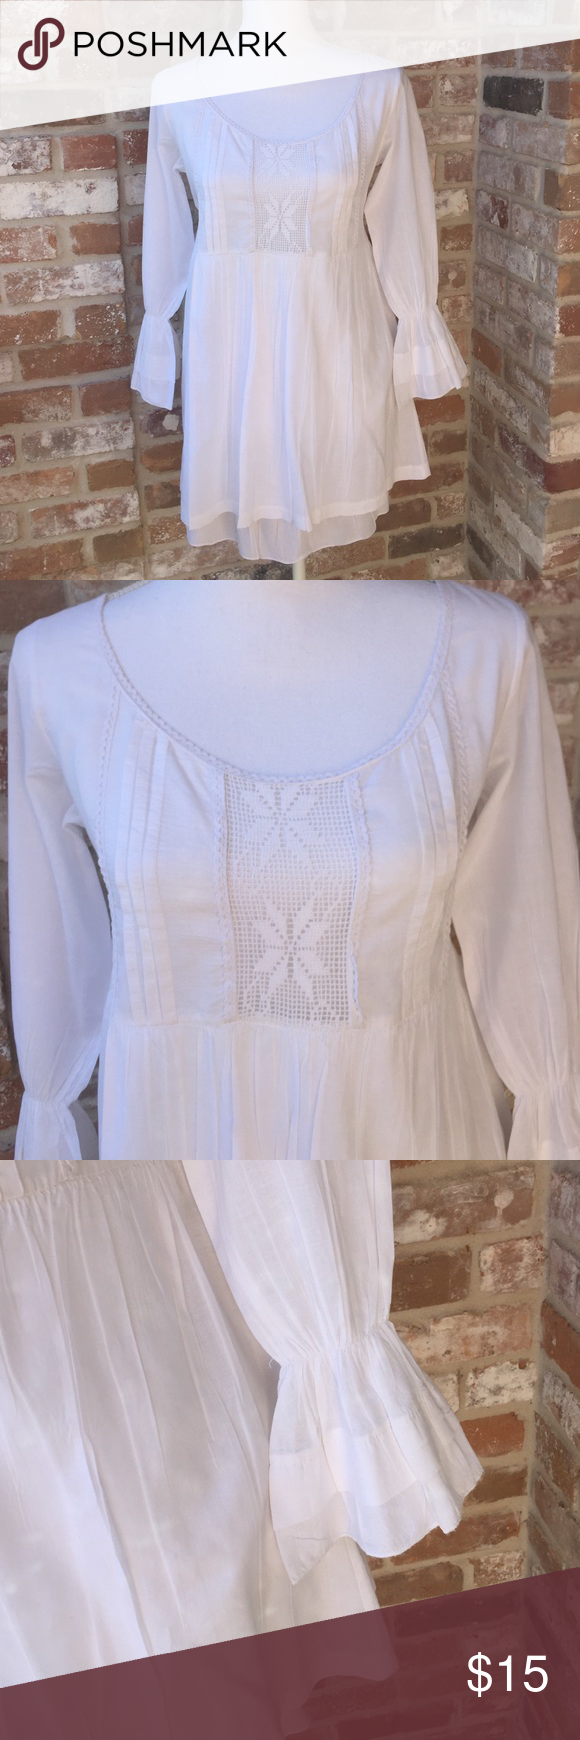 Boho blouse embroidered FINAL PRICE 95% cotton 5% elastane - one small hole near right shoulder Tops